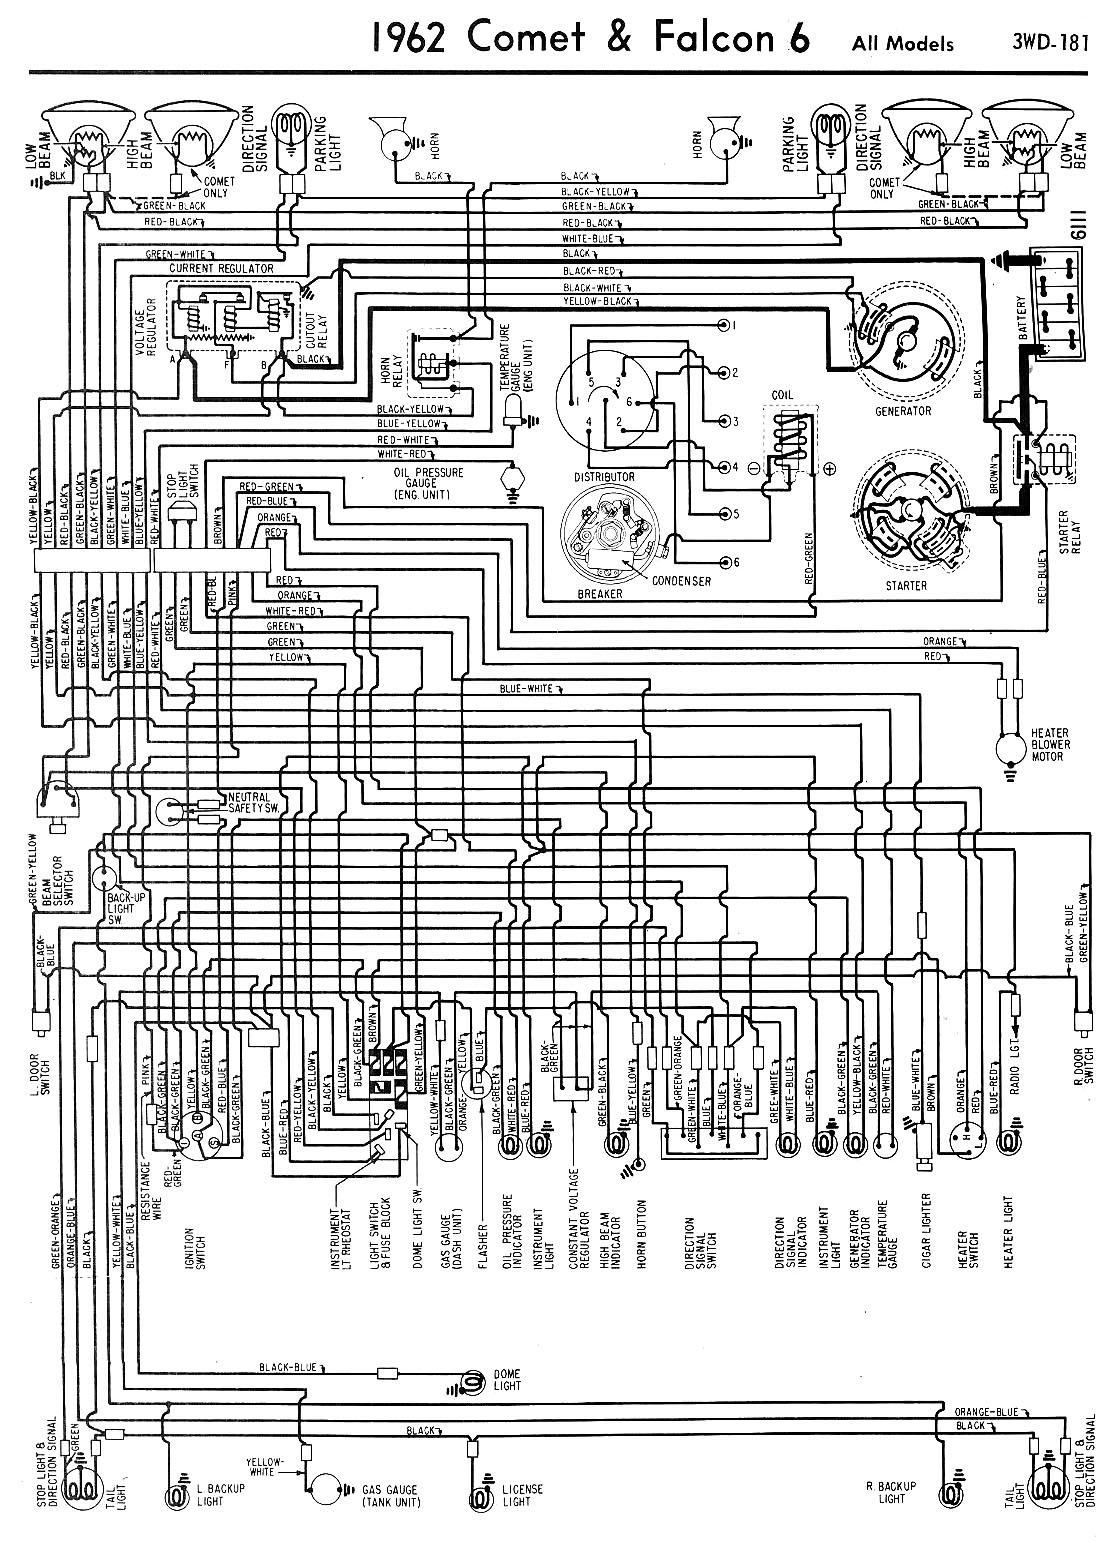 Falcon Diagrams 69 Camaro Windshield Wiper Wiring Diagram 62 Comet Drawing A